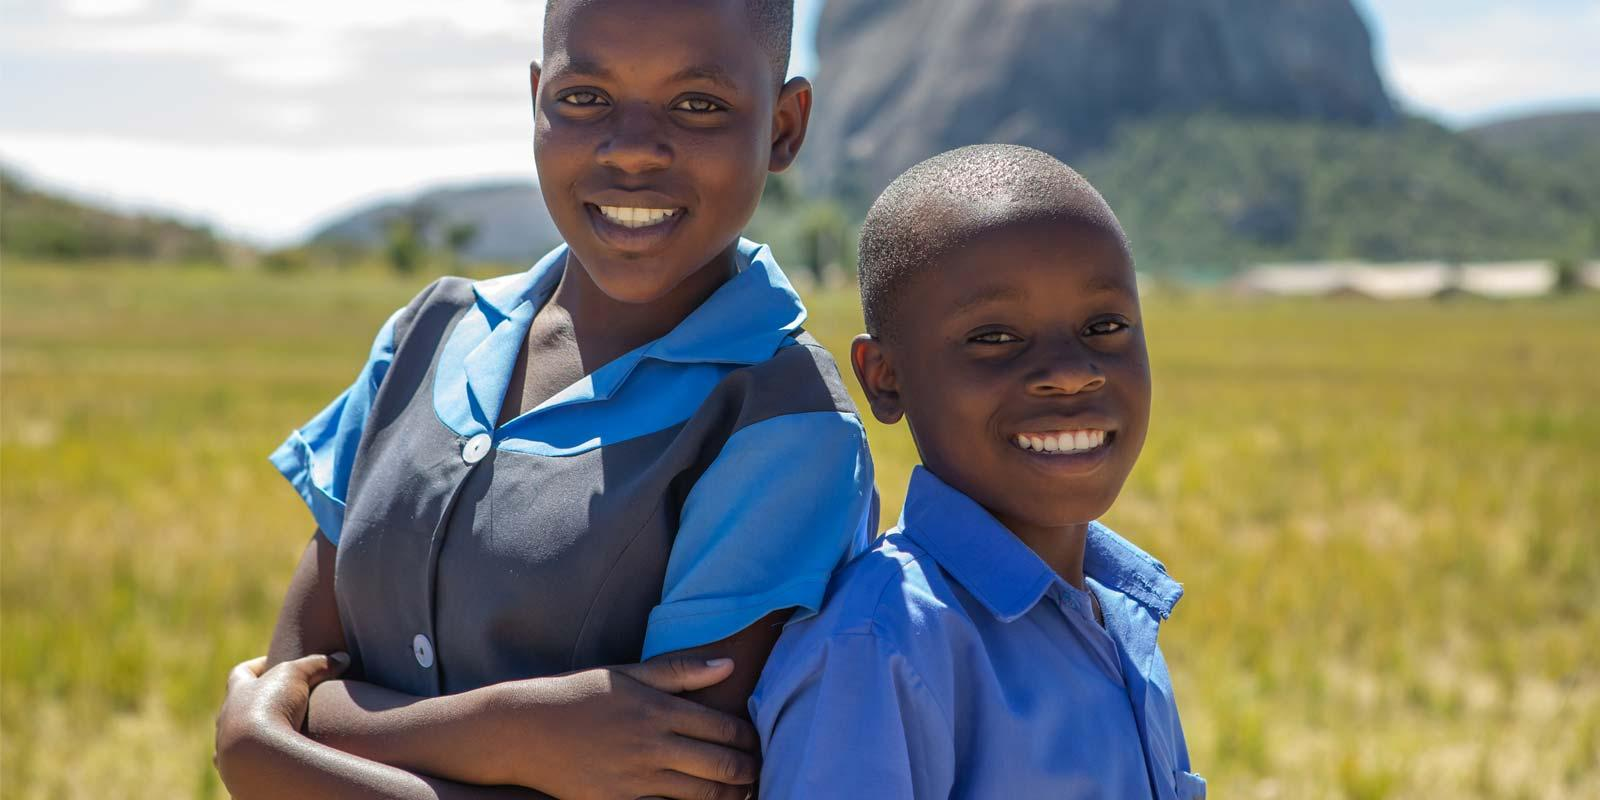 Kim and Hassan, girl and boy, 13, face the camera, wearing their school uniforms.